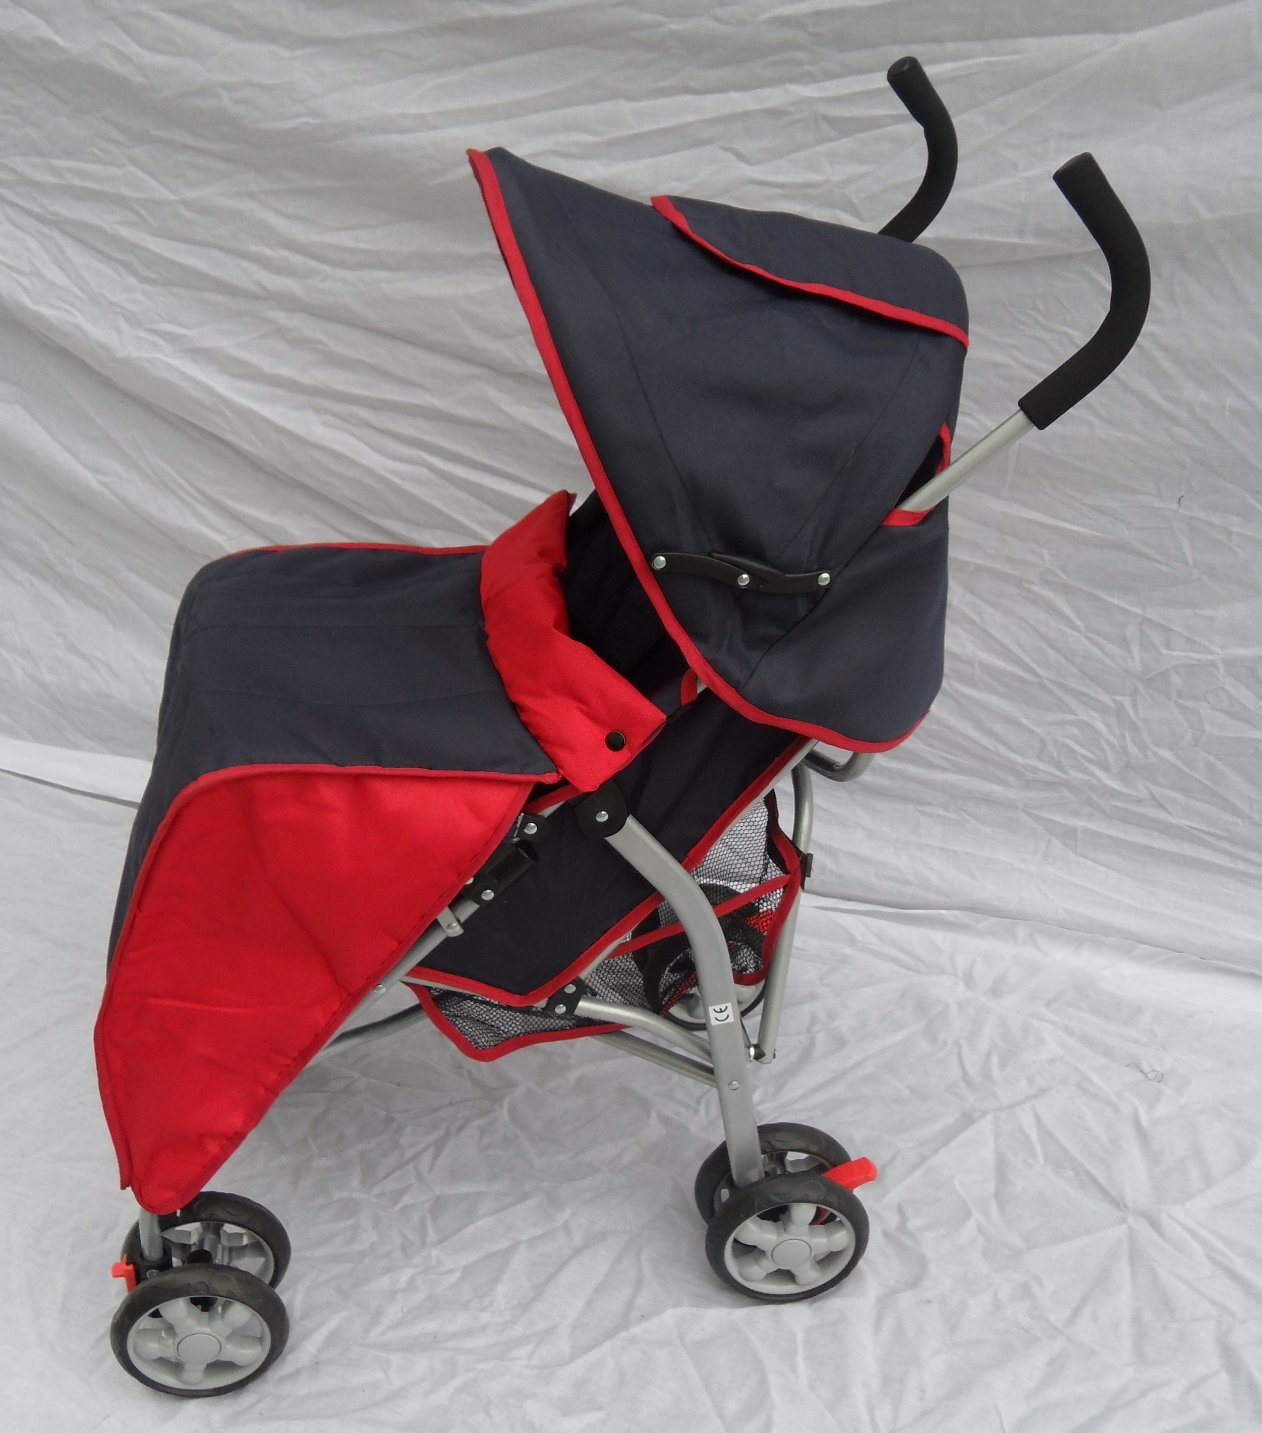 Fold European Baby Stroller with Rain Cover and Foot Cover